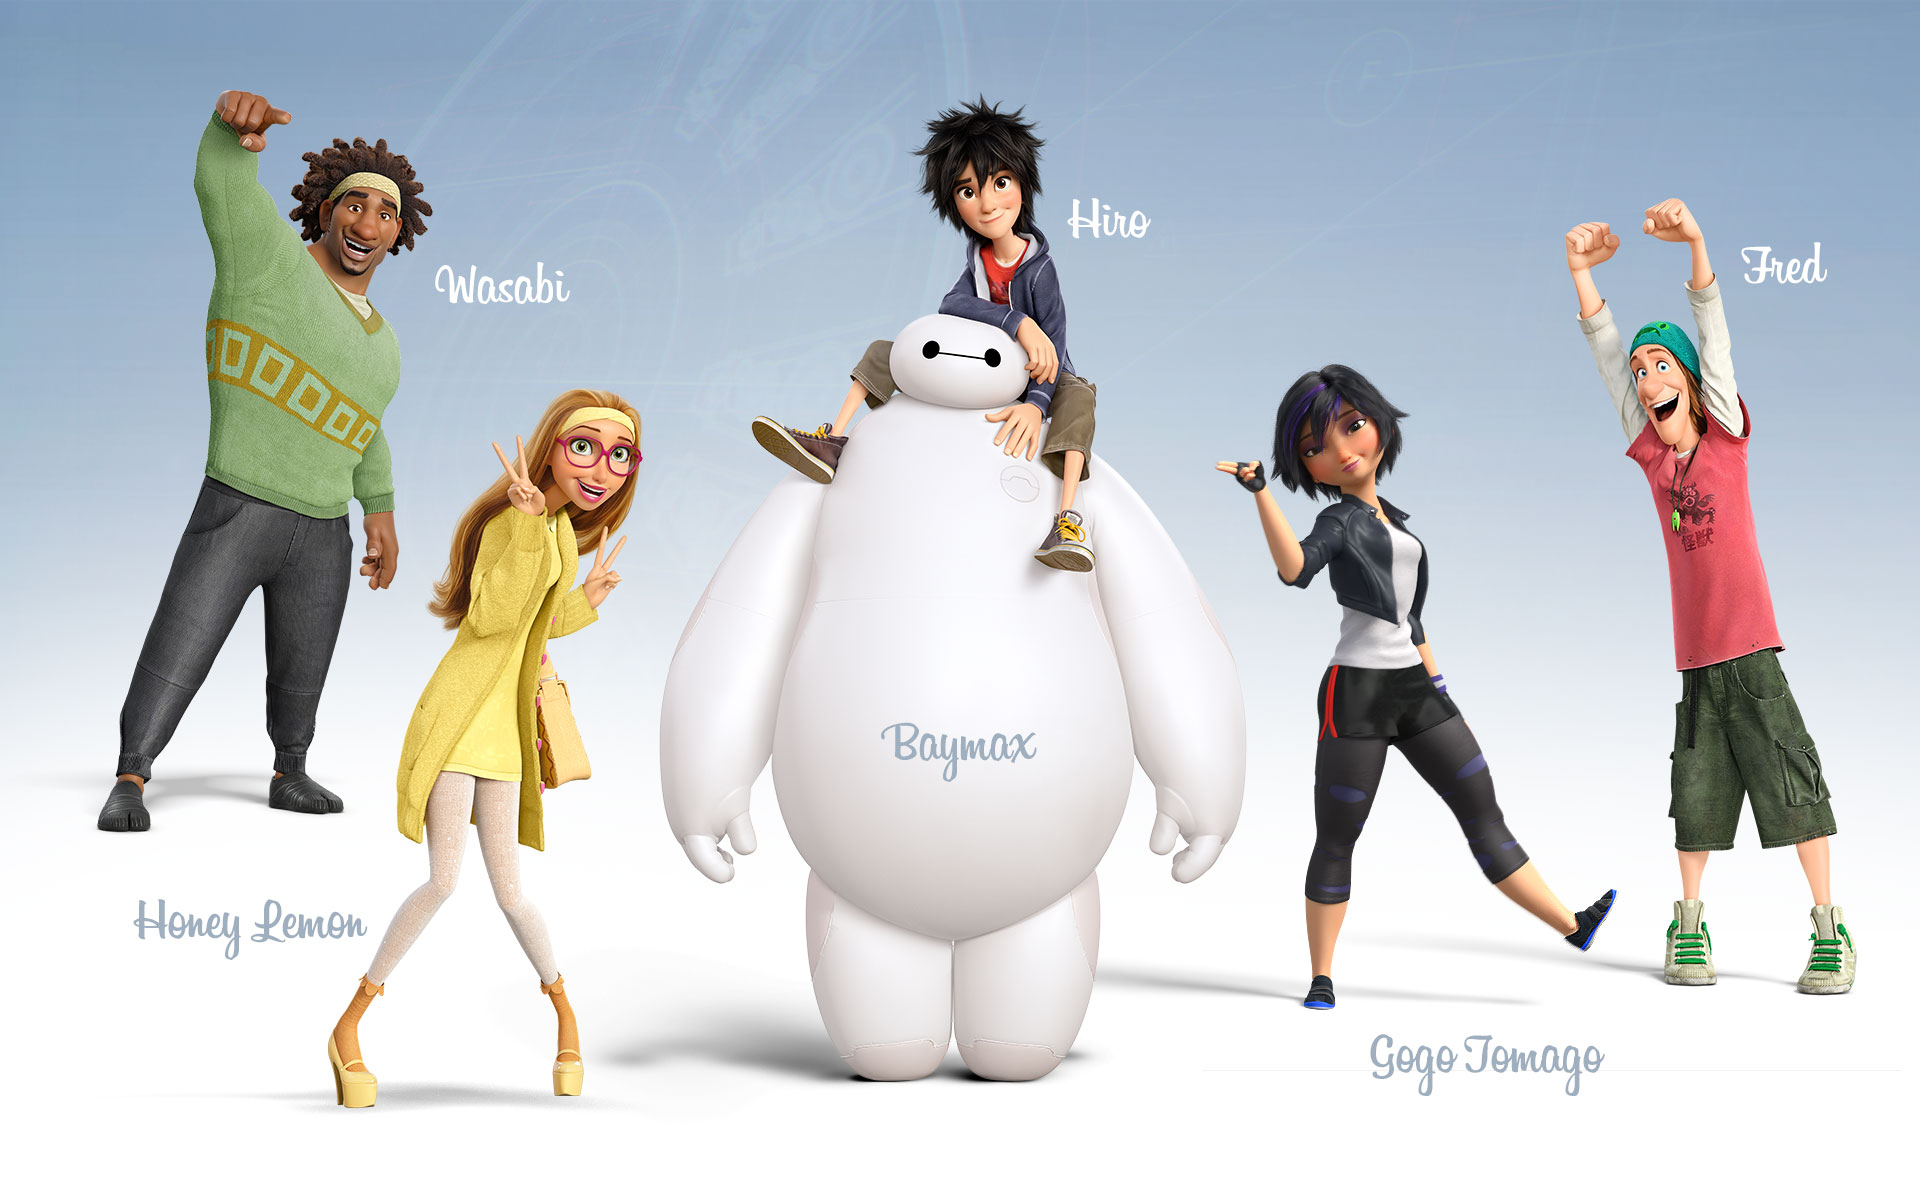 Big Hero 6/Gallery | Disney Wiki | FANDOM powered by Wikia